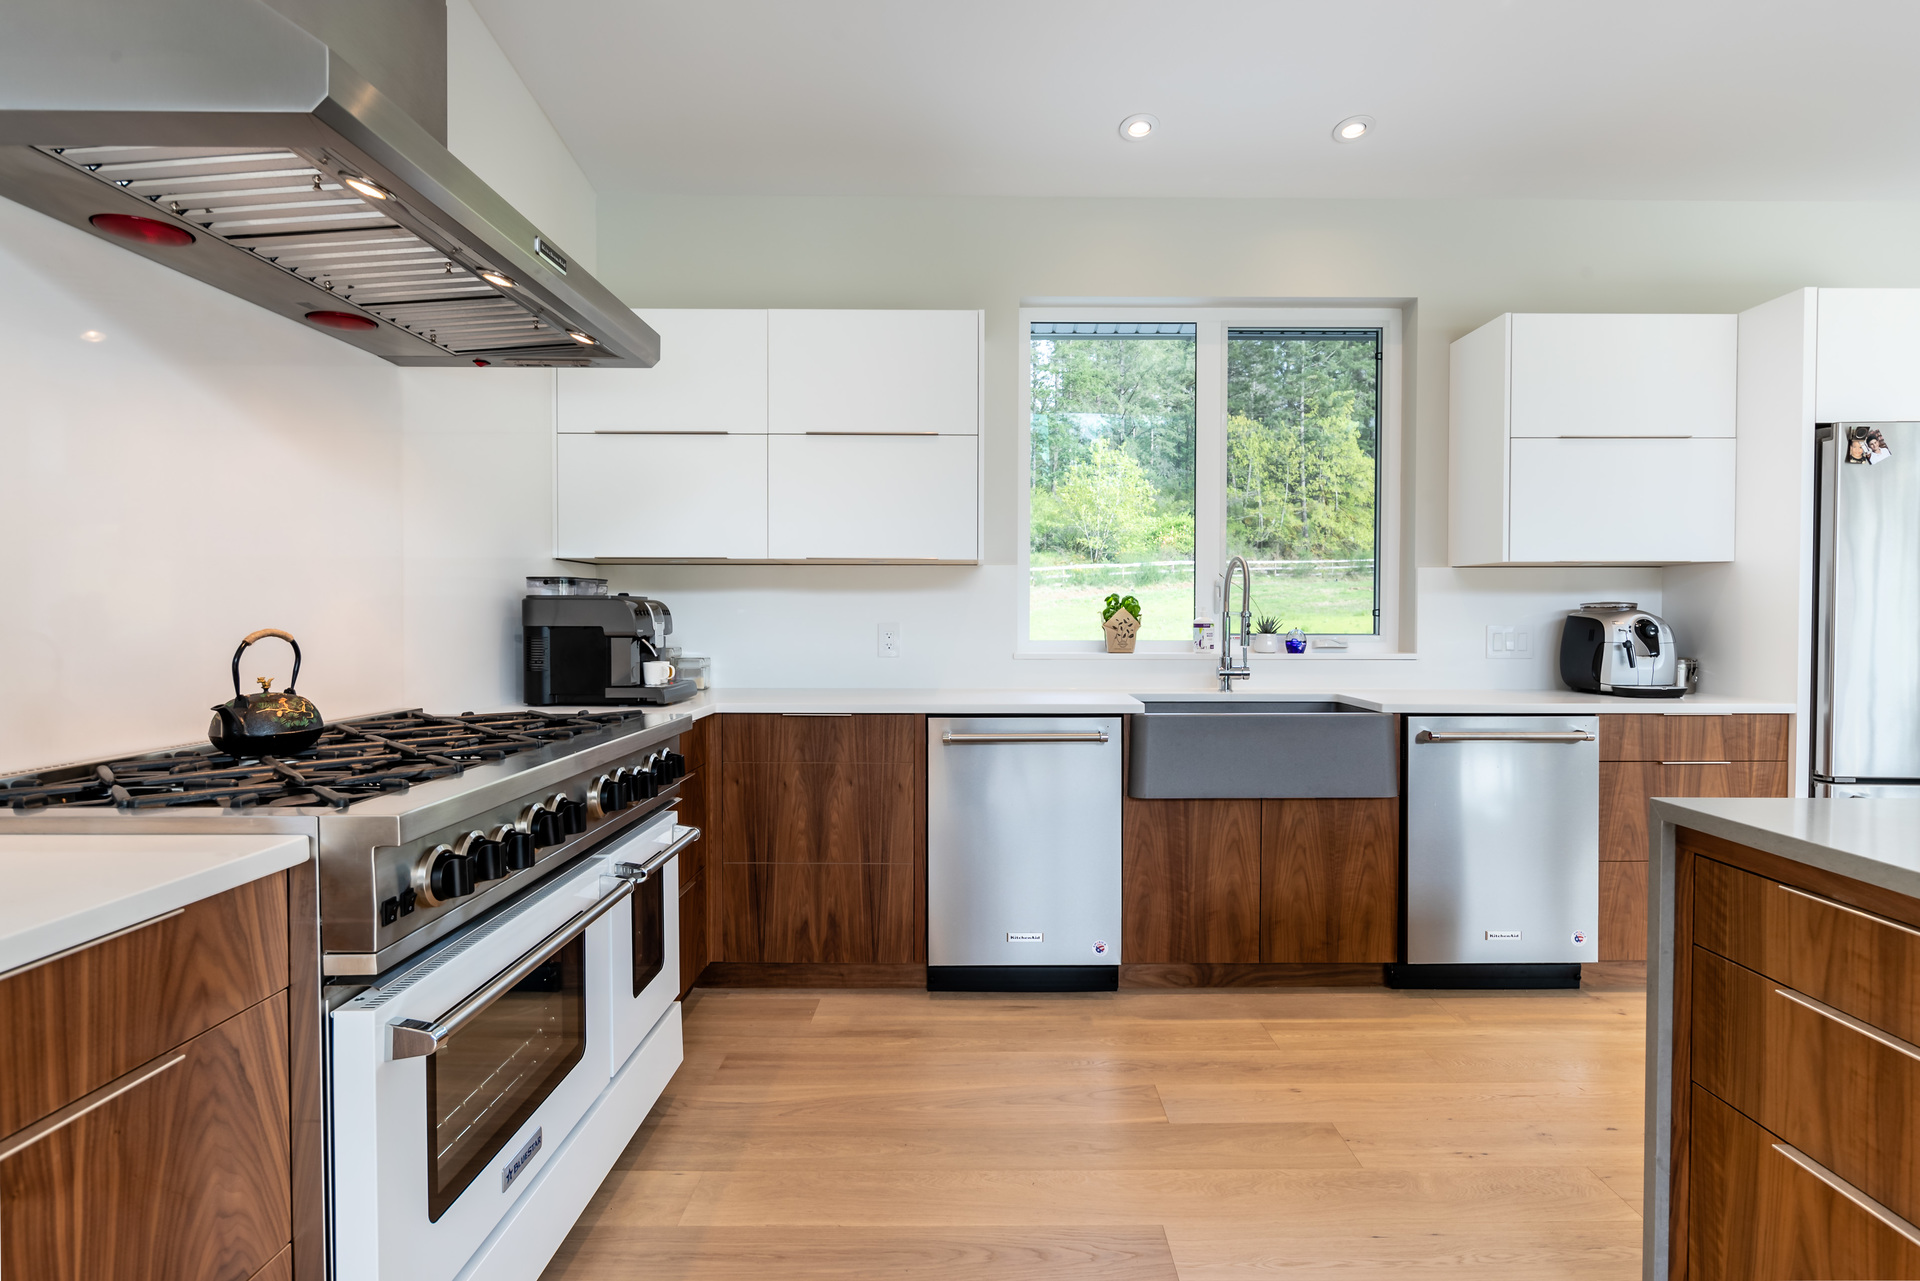 Stylish Wood-Accented Kitchen at 5100 & 5101 Jagtar's Way, Prospect Lake, Saanich West